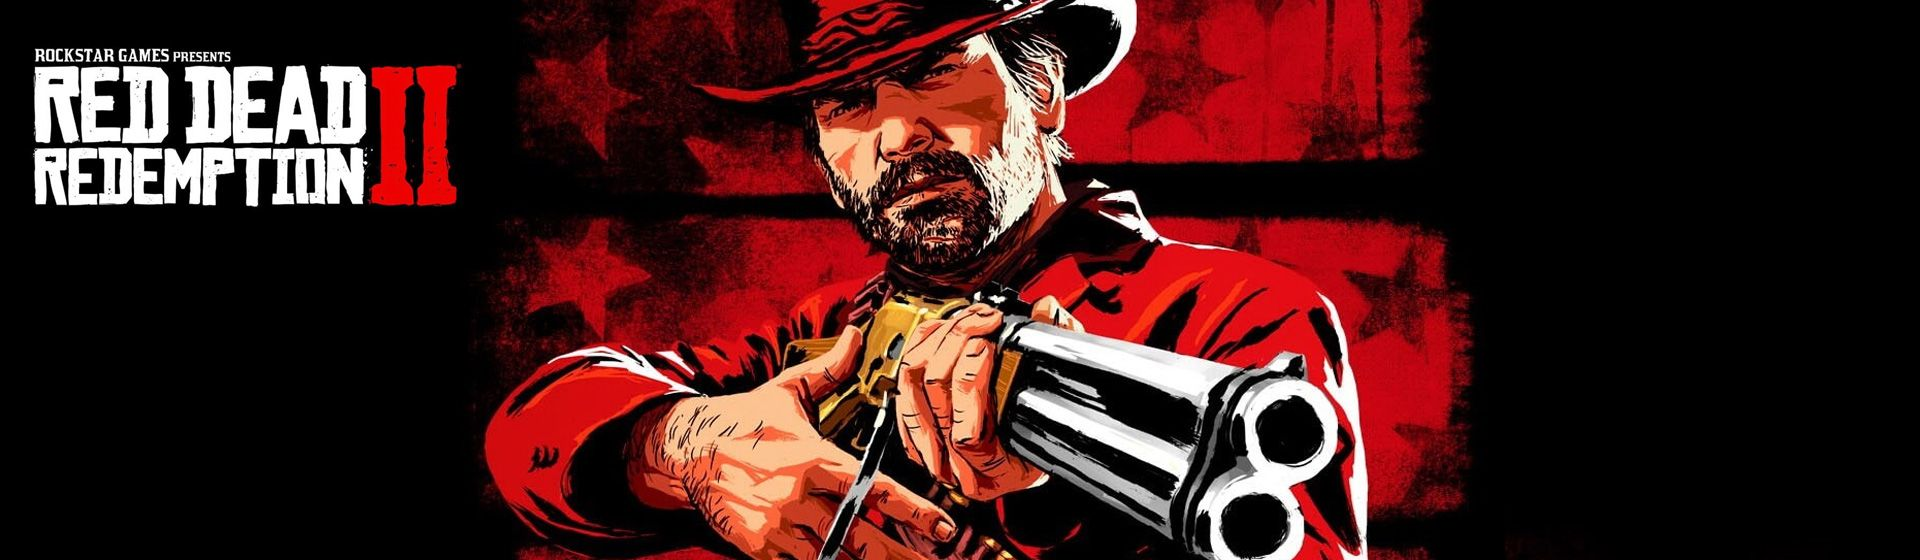 Red Dead Redemption 2: requisitos mínimos e recomendados no PC